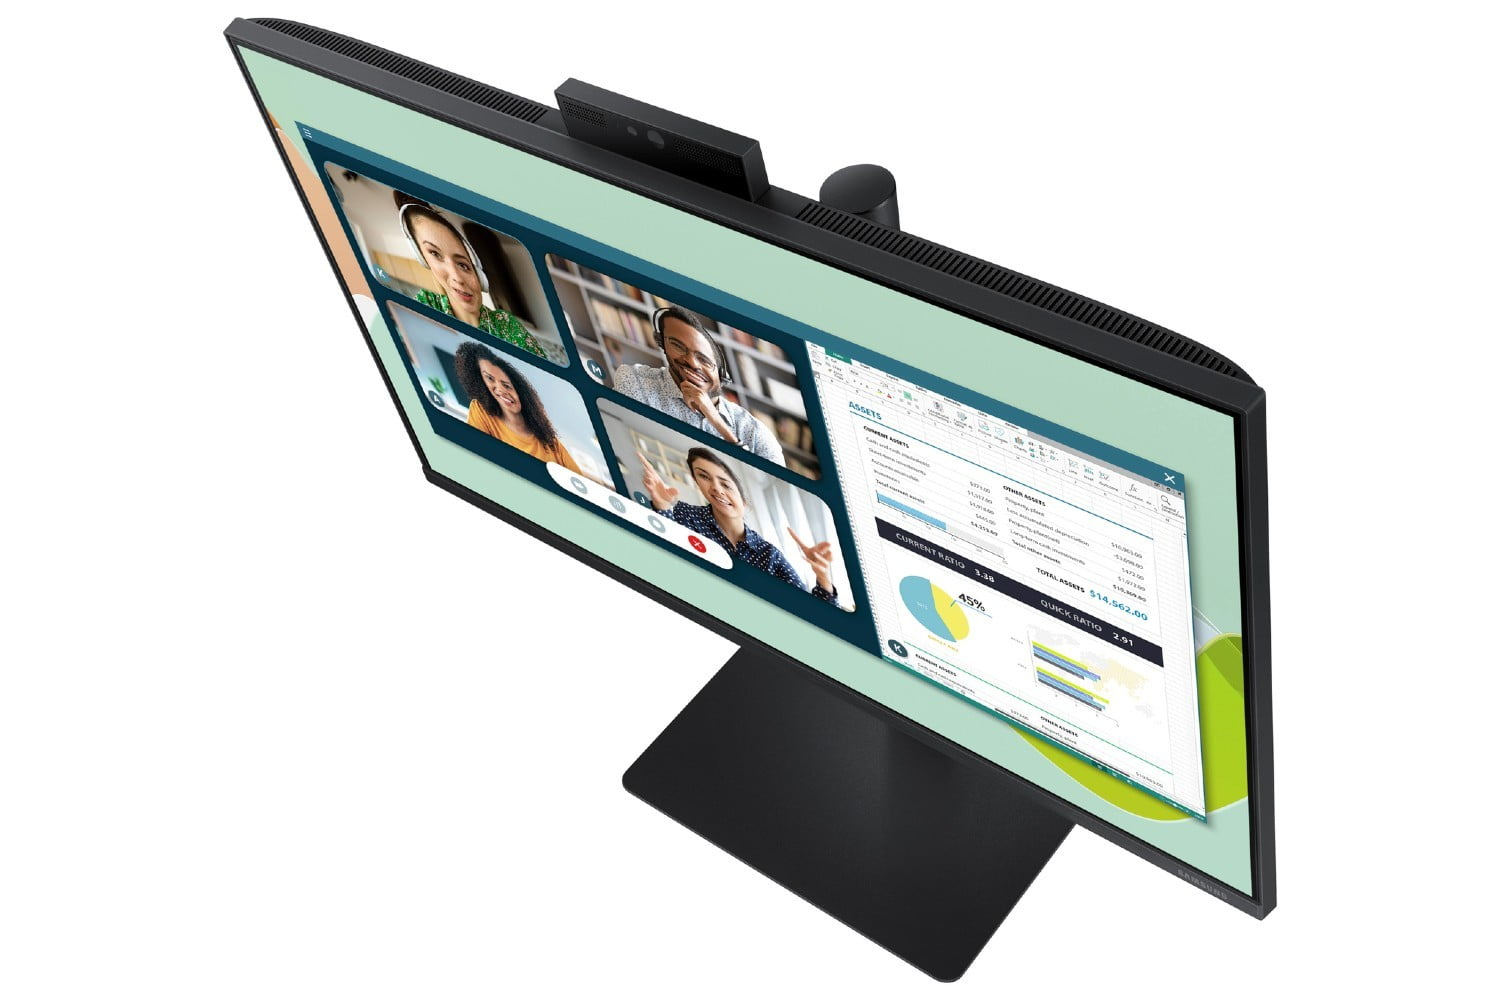 Samsung Webcam Monitor Is All About Videoconferencing | Digital Trends